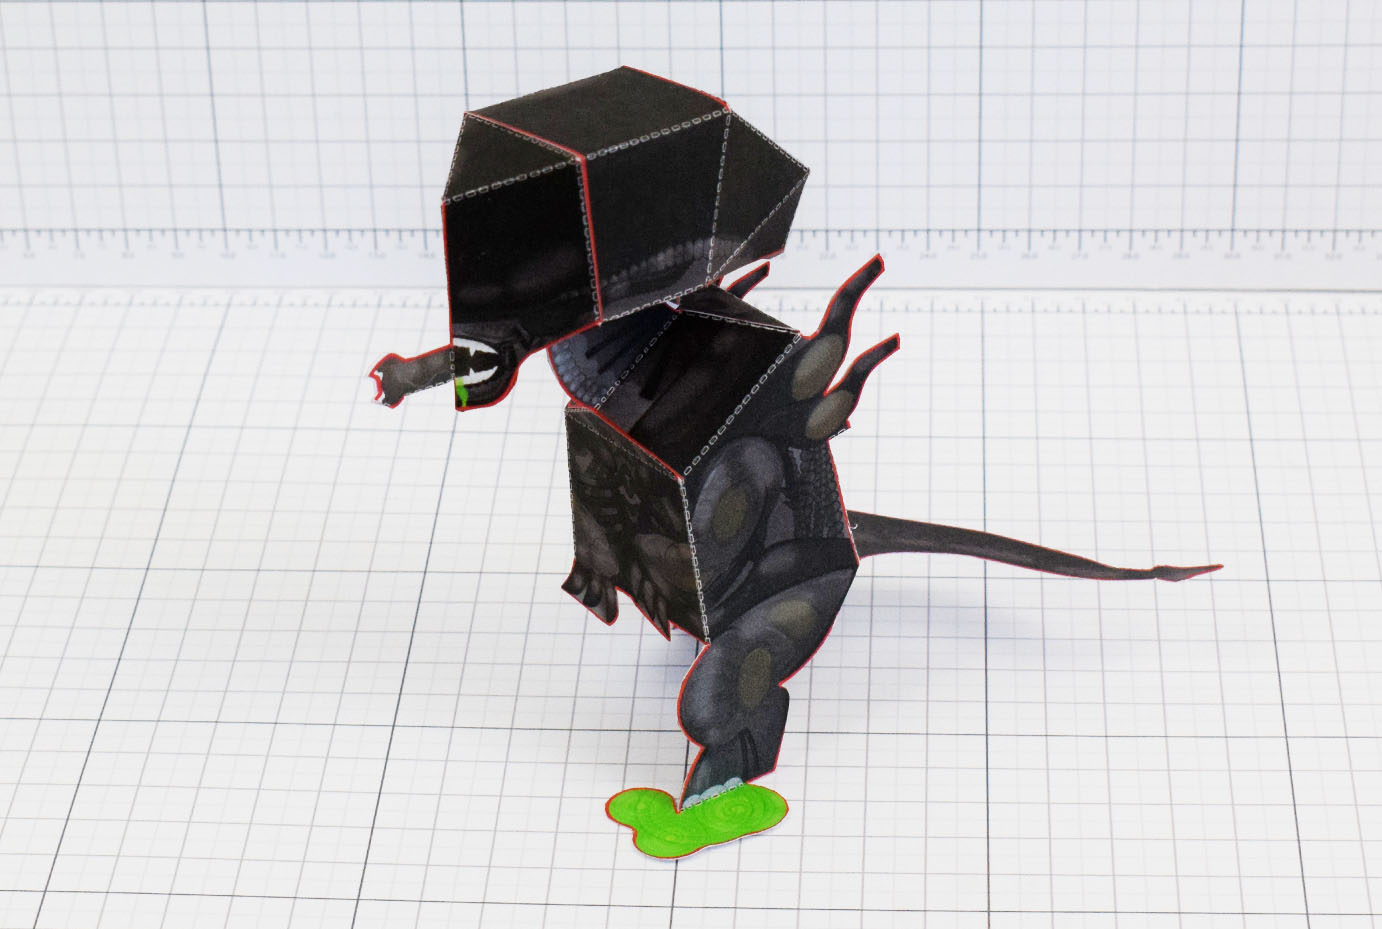 PTI - Xenomorph Alien Fan Art Paper Toy Craft Image - Main